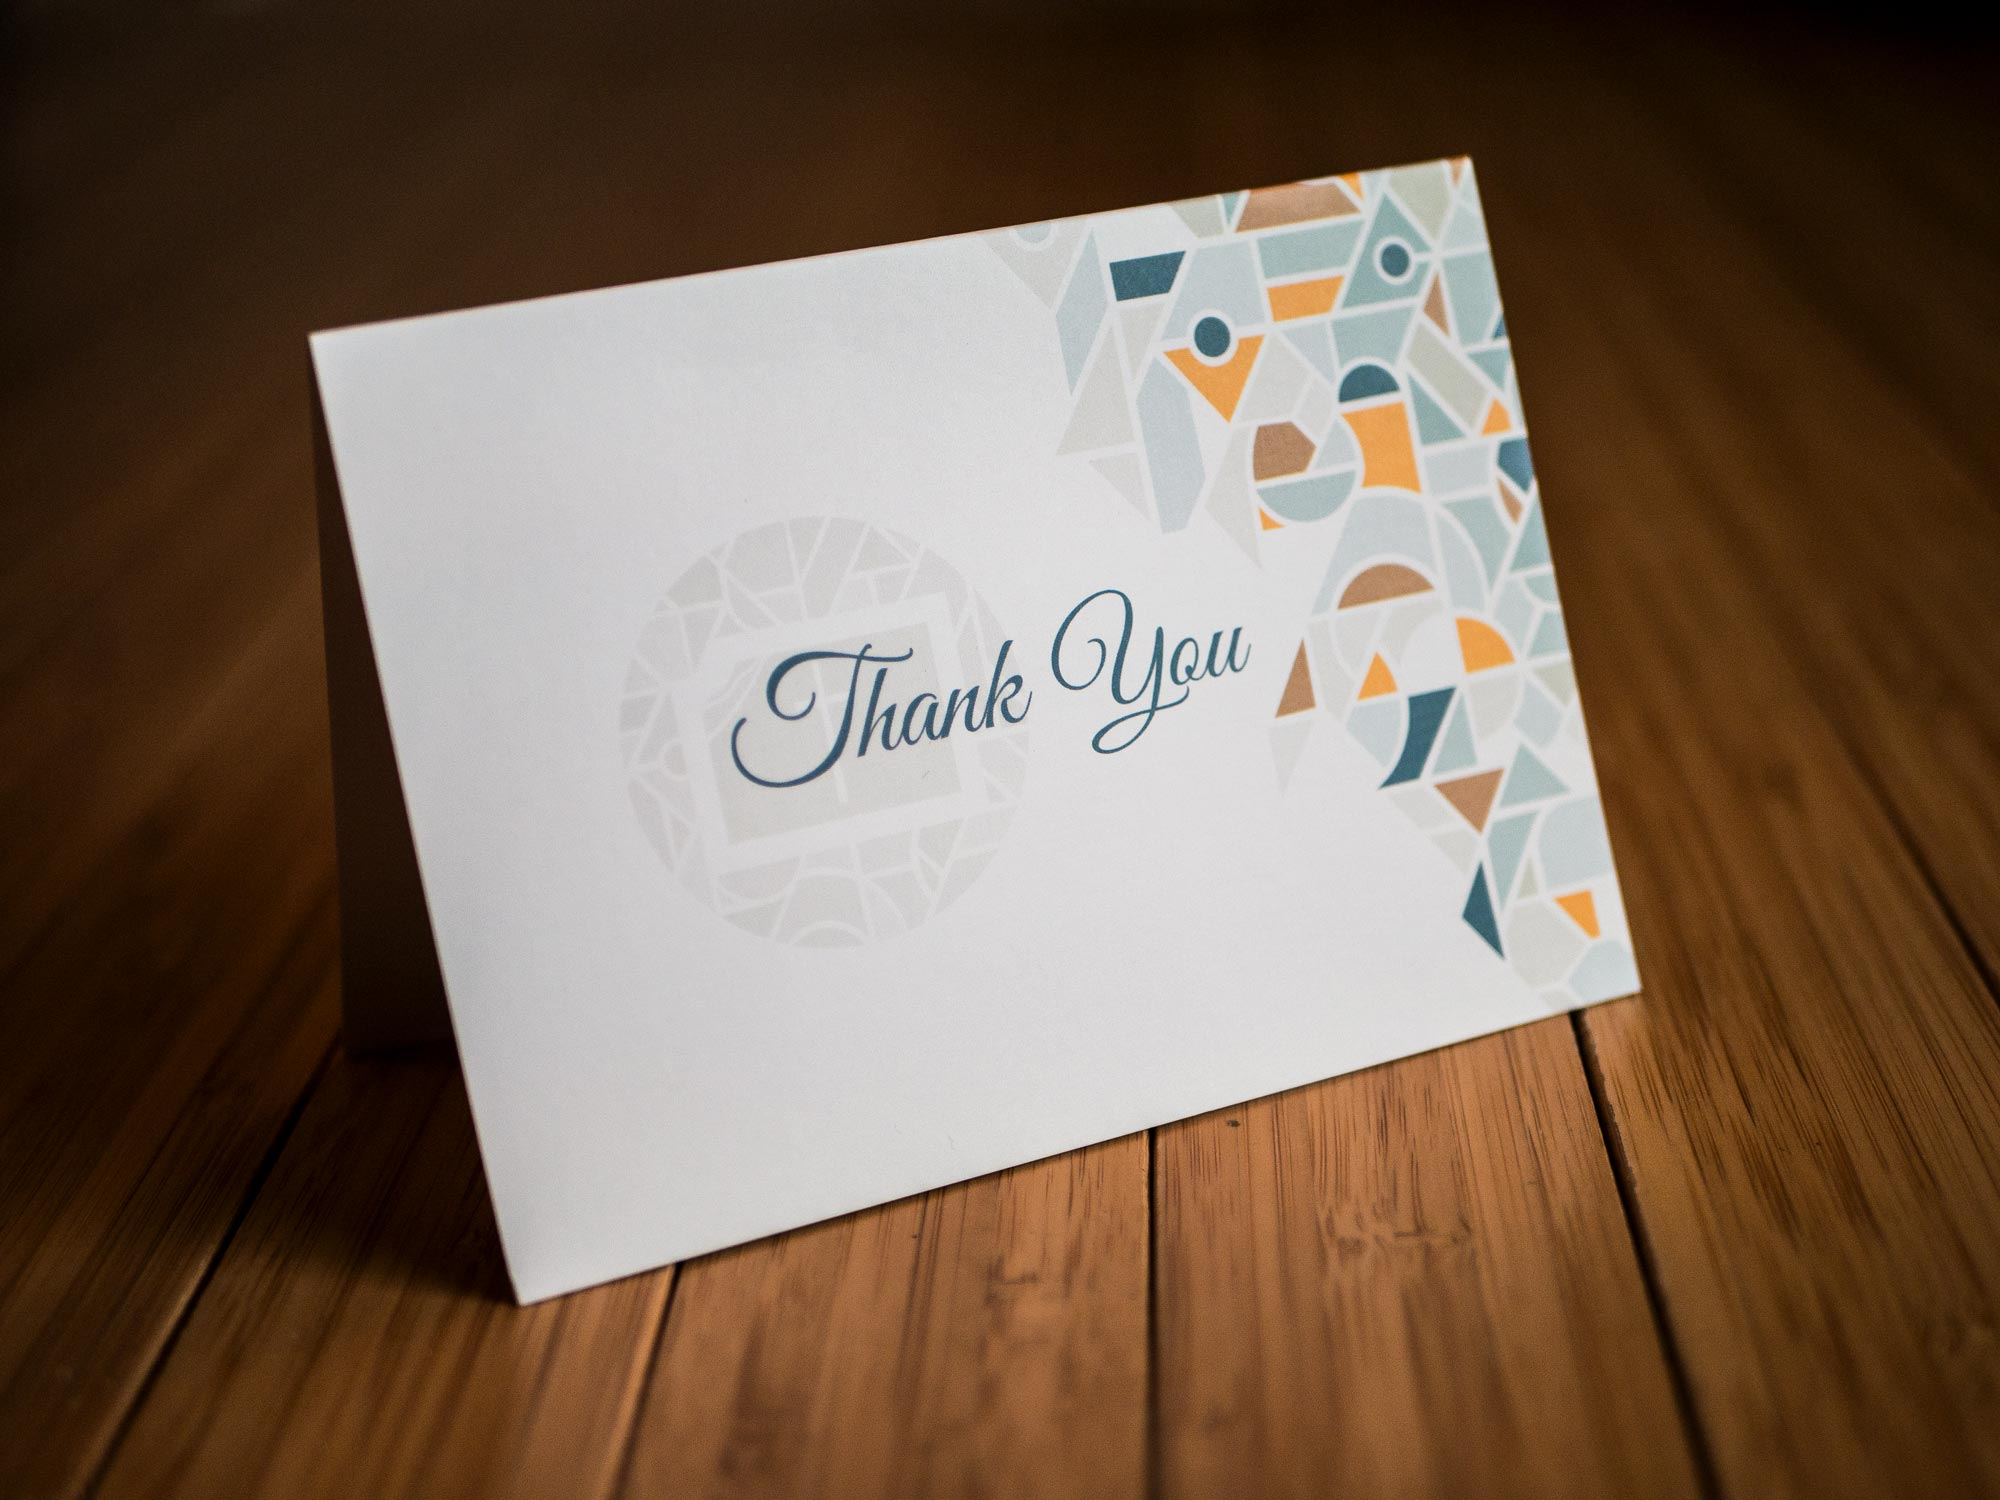 Brookside Community Development Corporation thank you notecard